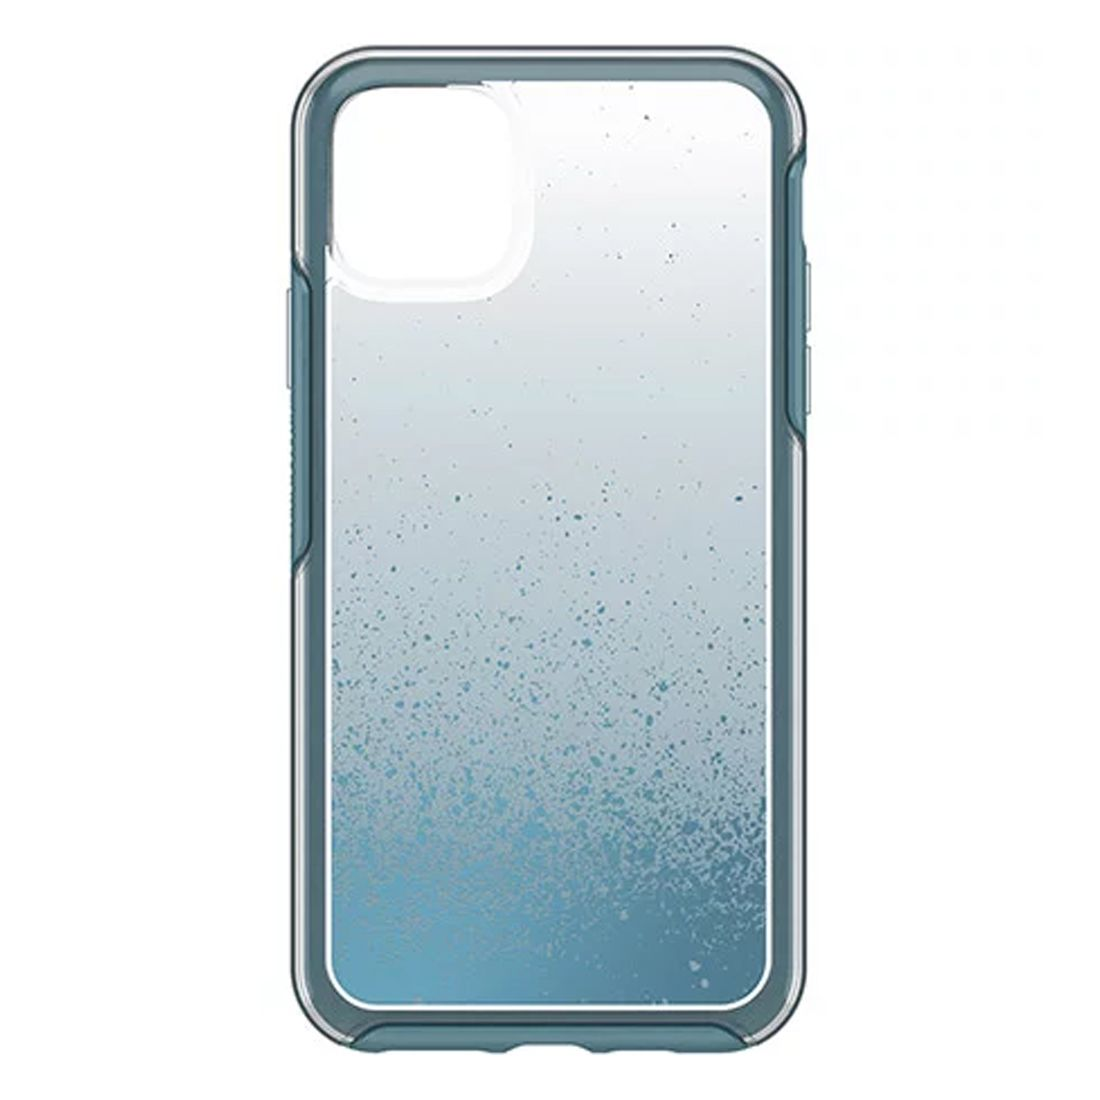 Otterbox Symmetry IML Case for Apple iPhone 11 Pro Max - We'll Call Blue